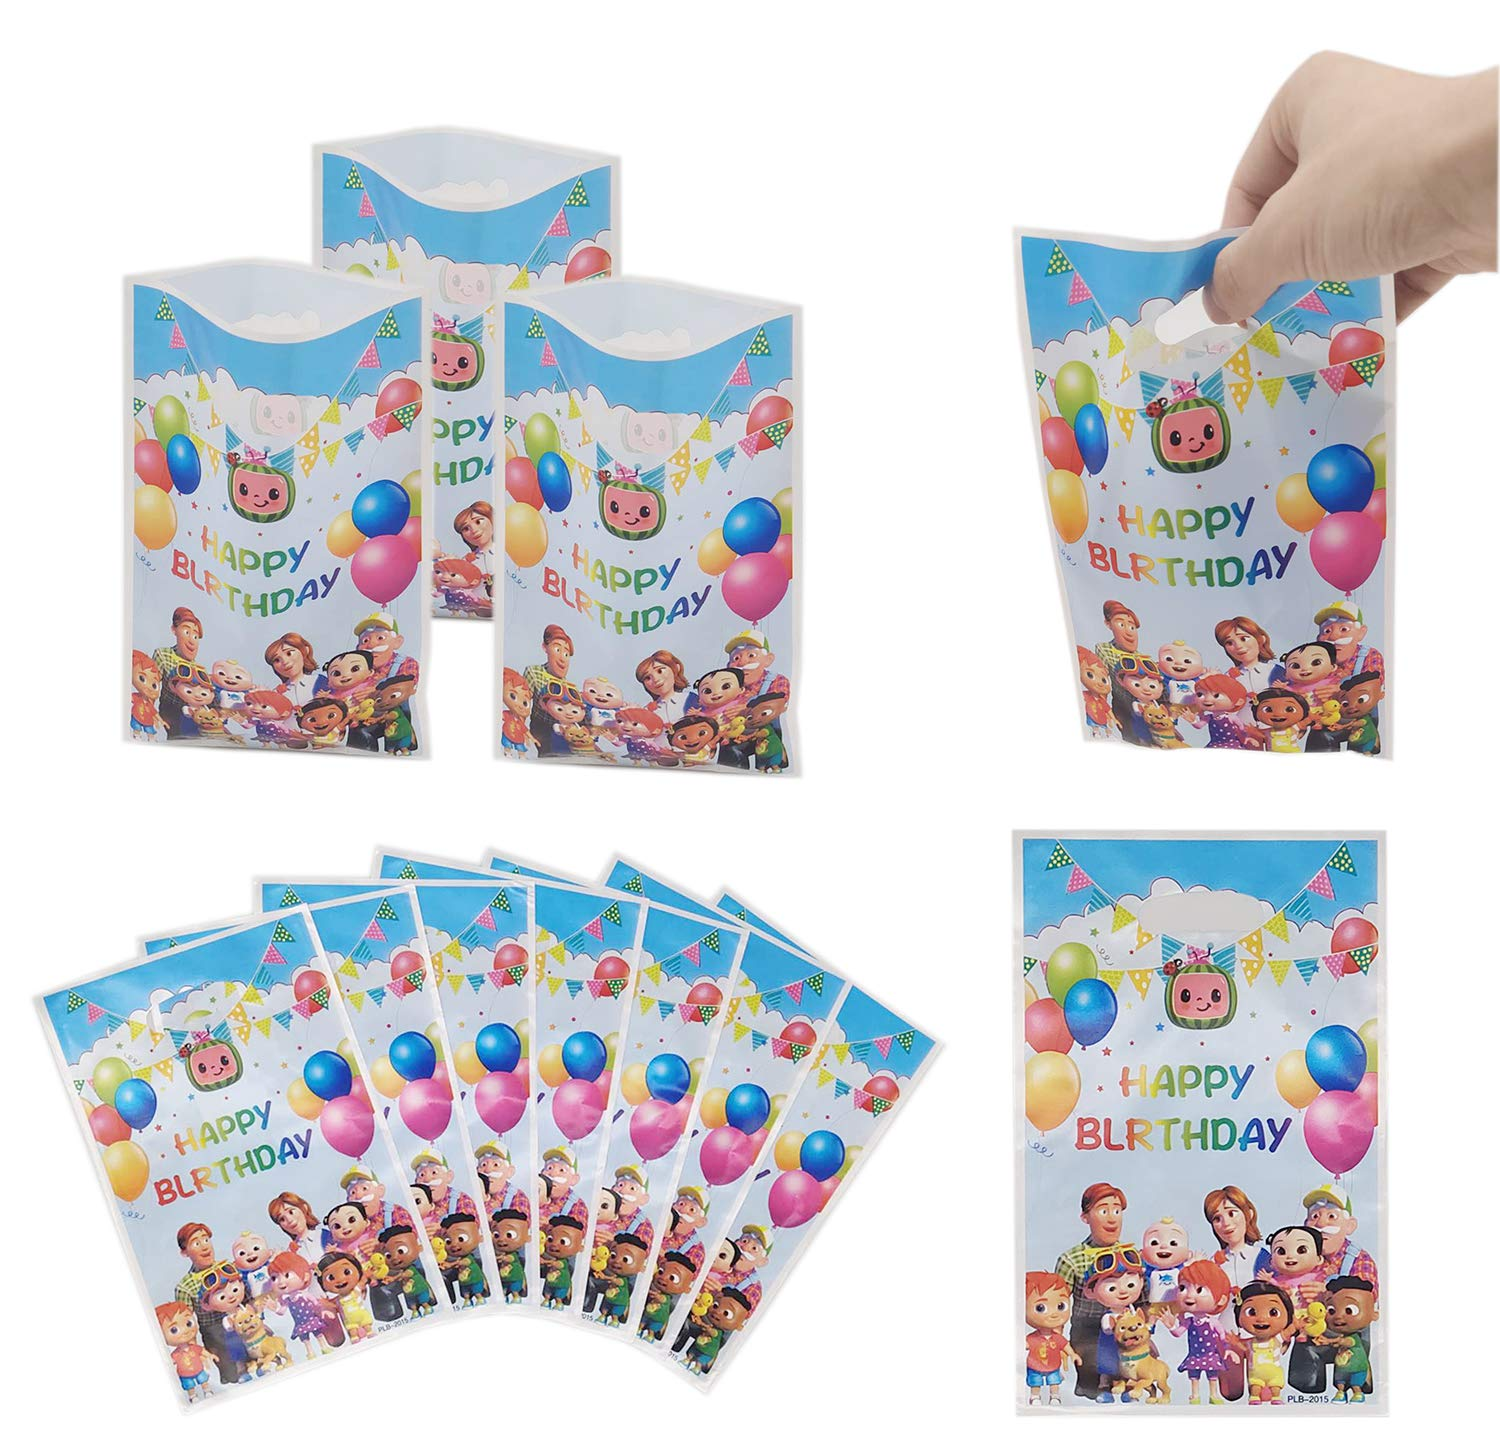 Large Banner Fun Indoor Outdoor Throwing Games for Kids Adult Themed Birthday Party Favors Decoration Supplies Baby Shower Activities Hsooryx Cocomelon Toss Games with 4 Bean Bags Set Fun Party Game